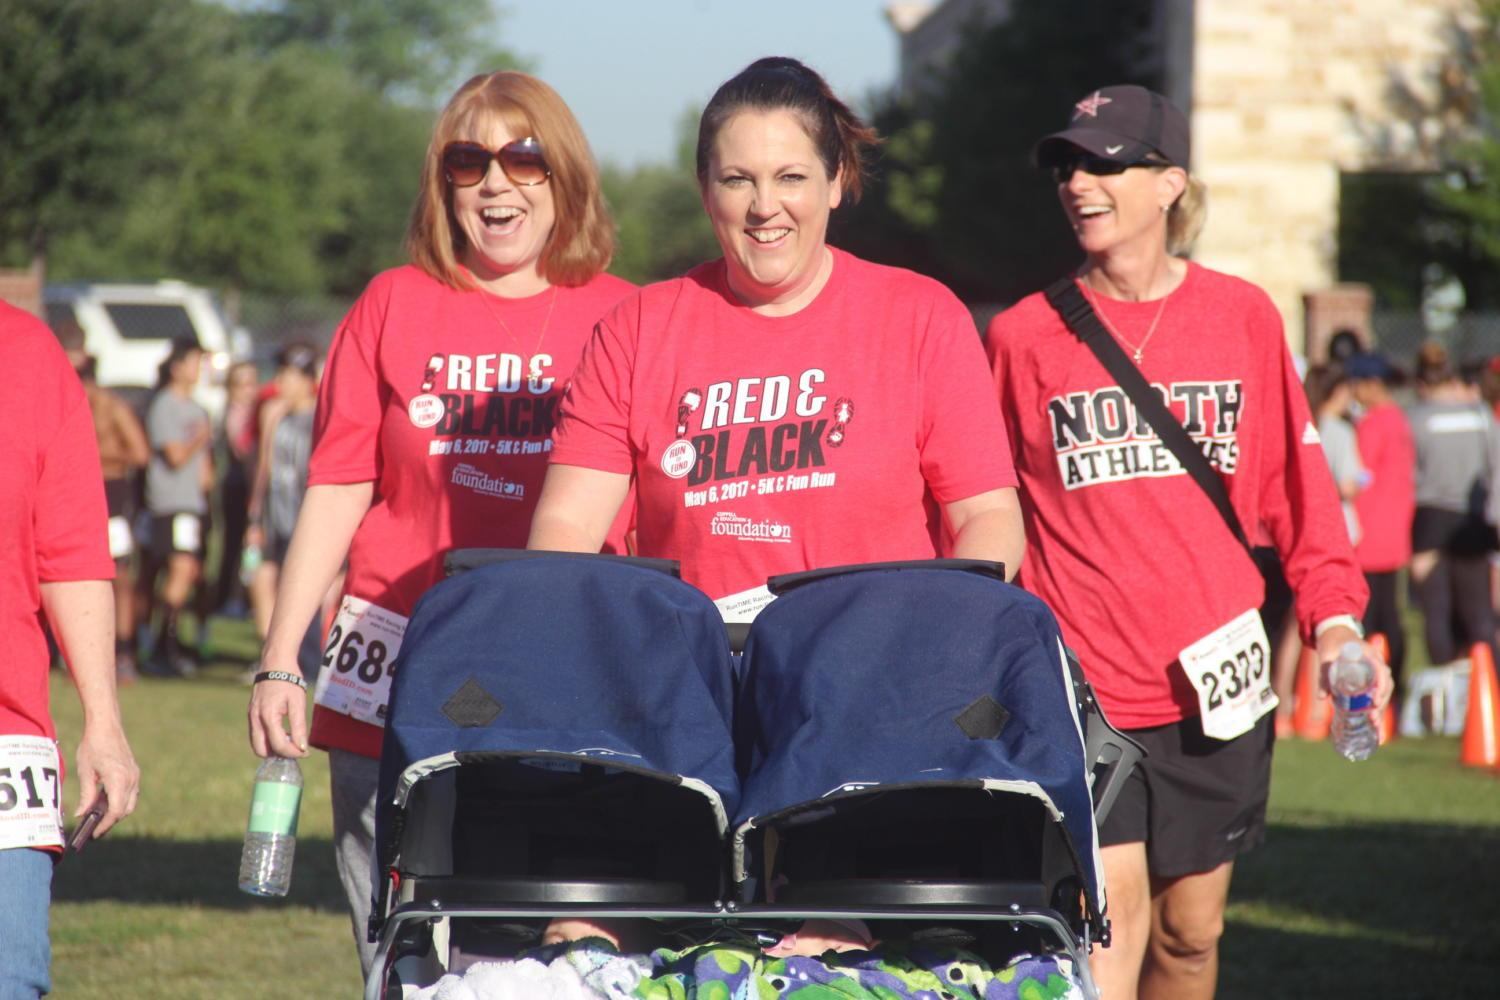 Coppell+Middle+School+North+Principal+Amanda+Ziaer+and+other+women+walk+across+the+finish+line+of+the+one+mile+fun+run.+The+Red+and+Black+Run+to+Fund+took+place+on+Saturday+at+Coppell+Middle+School+North%2C+bringing+people+from+all+different+communities+together.+